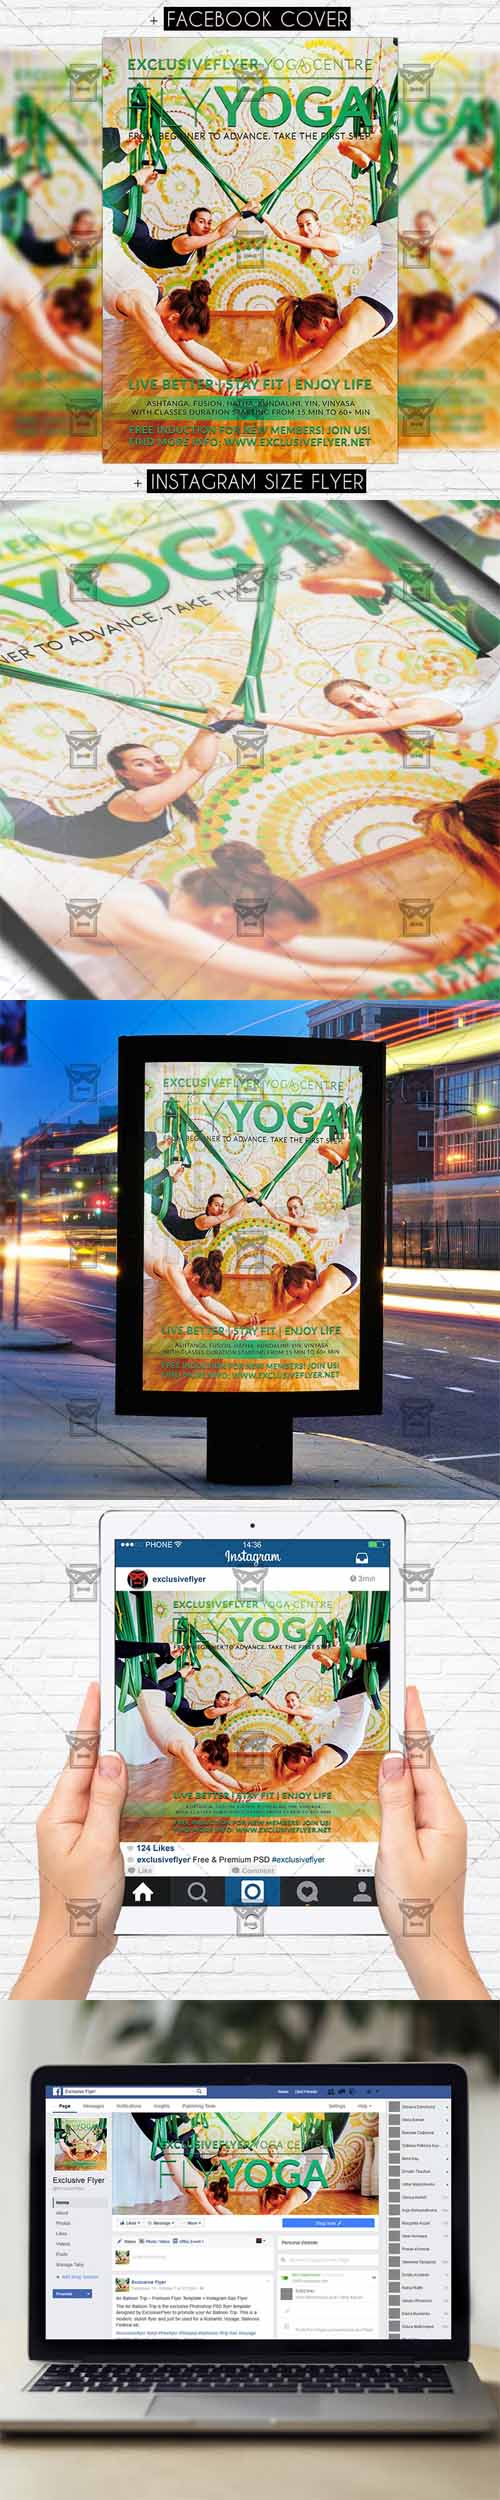 Flyer Template - Fly Yoga